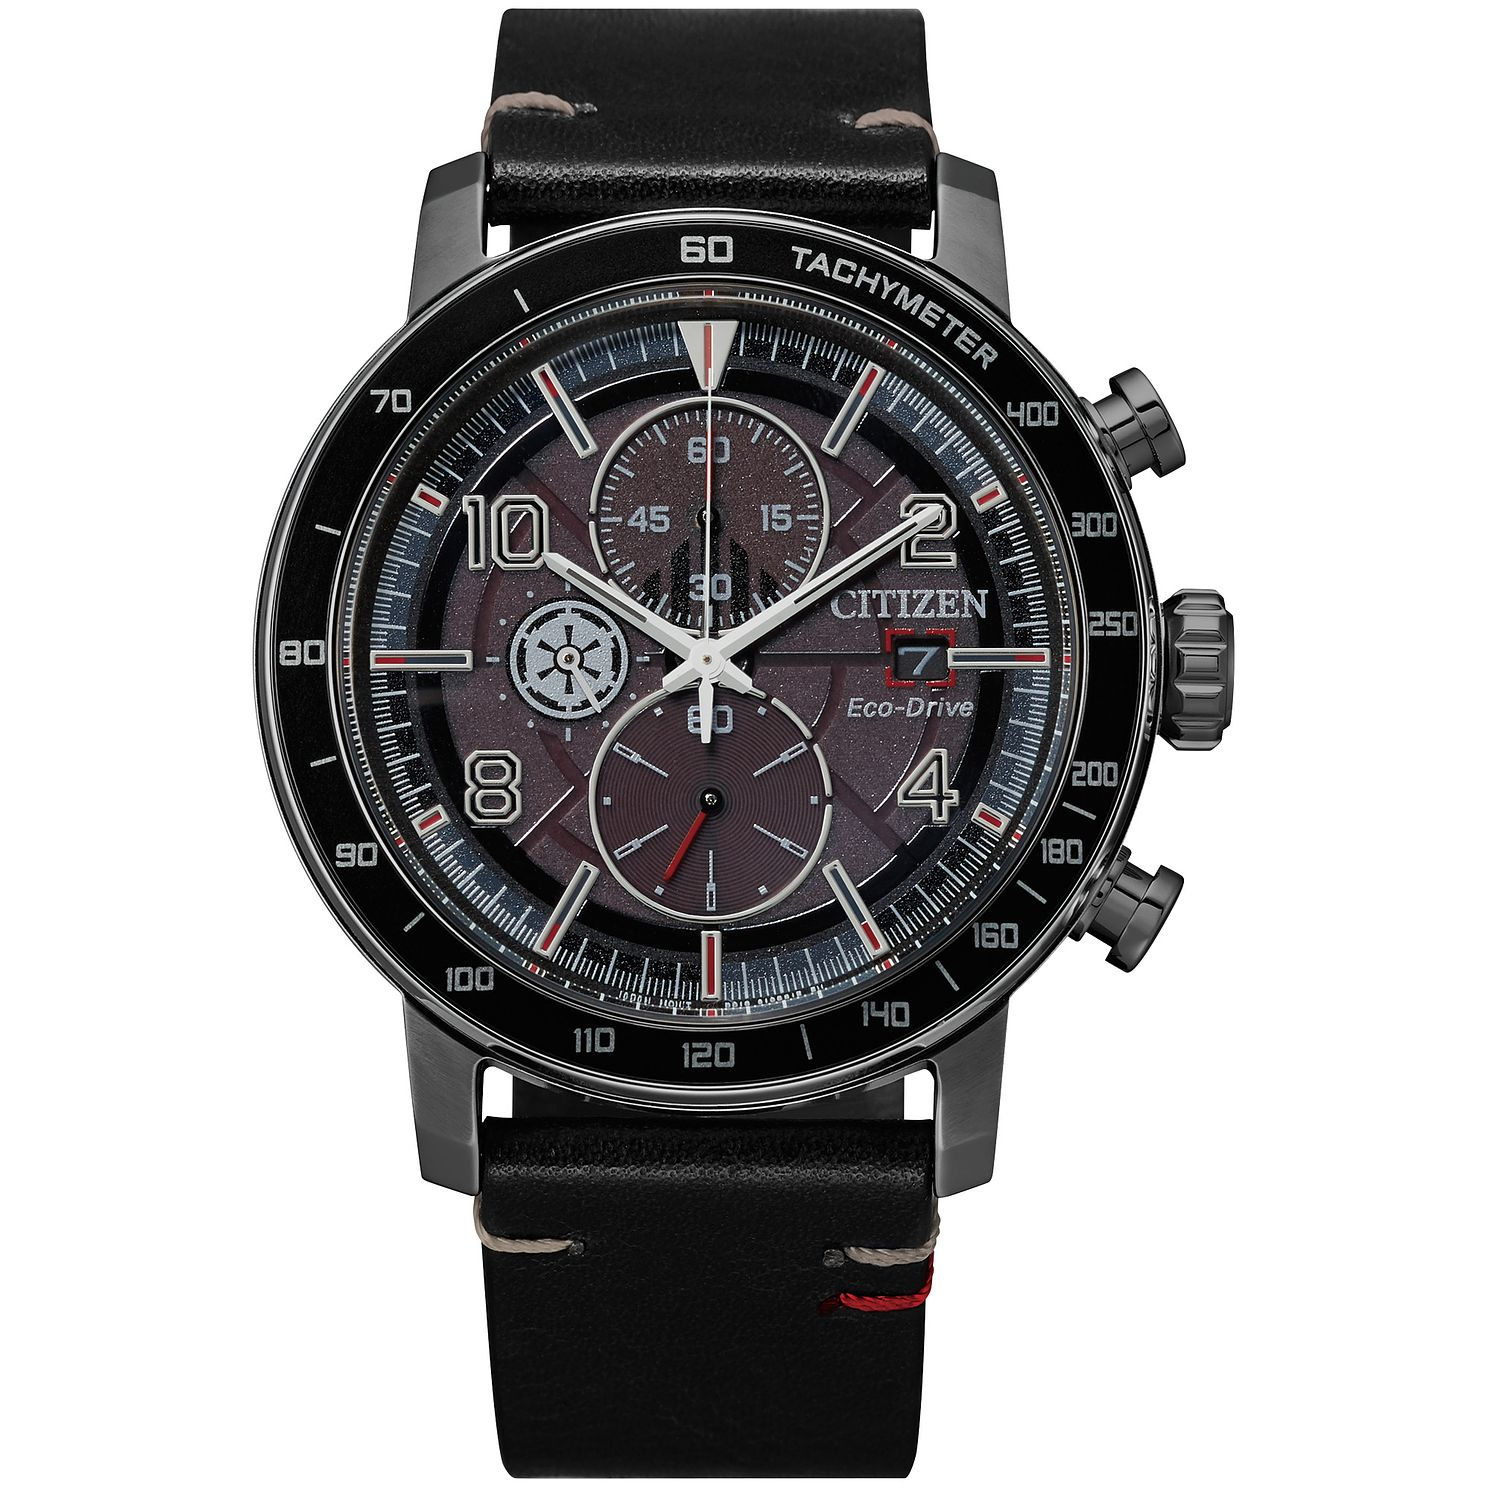 Citizen Star Wars Darth Vader Leather Strap Watch - Product number 1017020